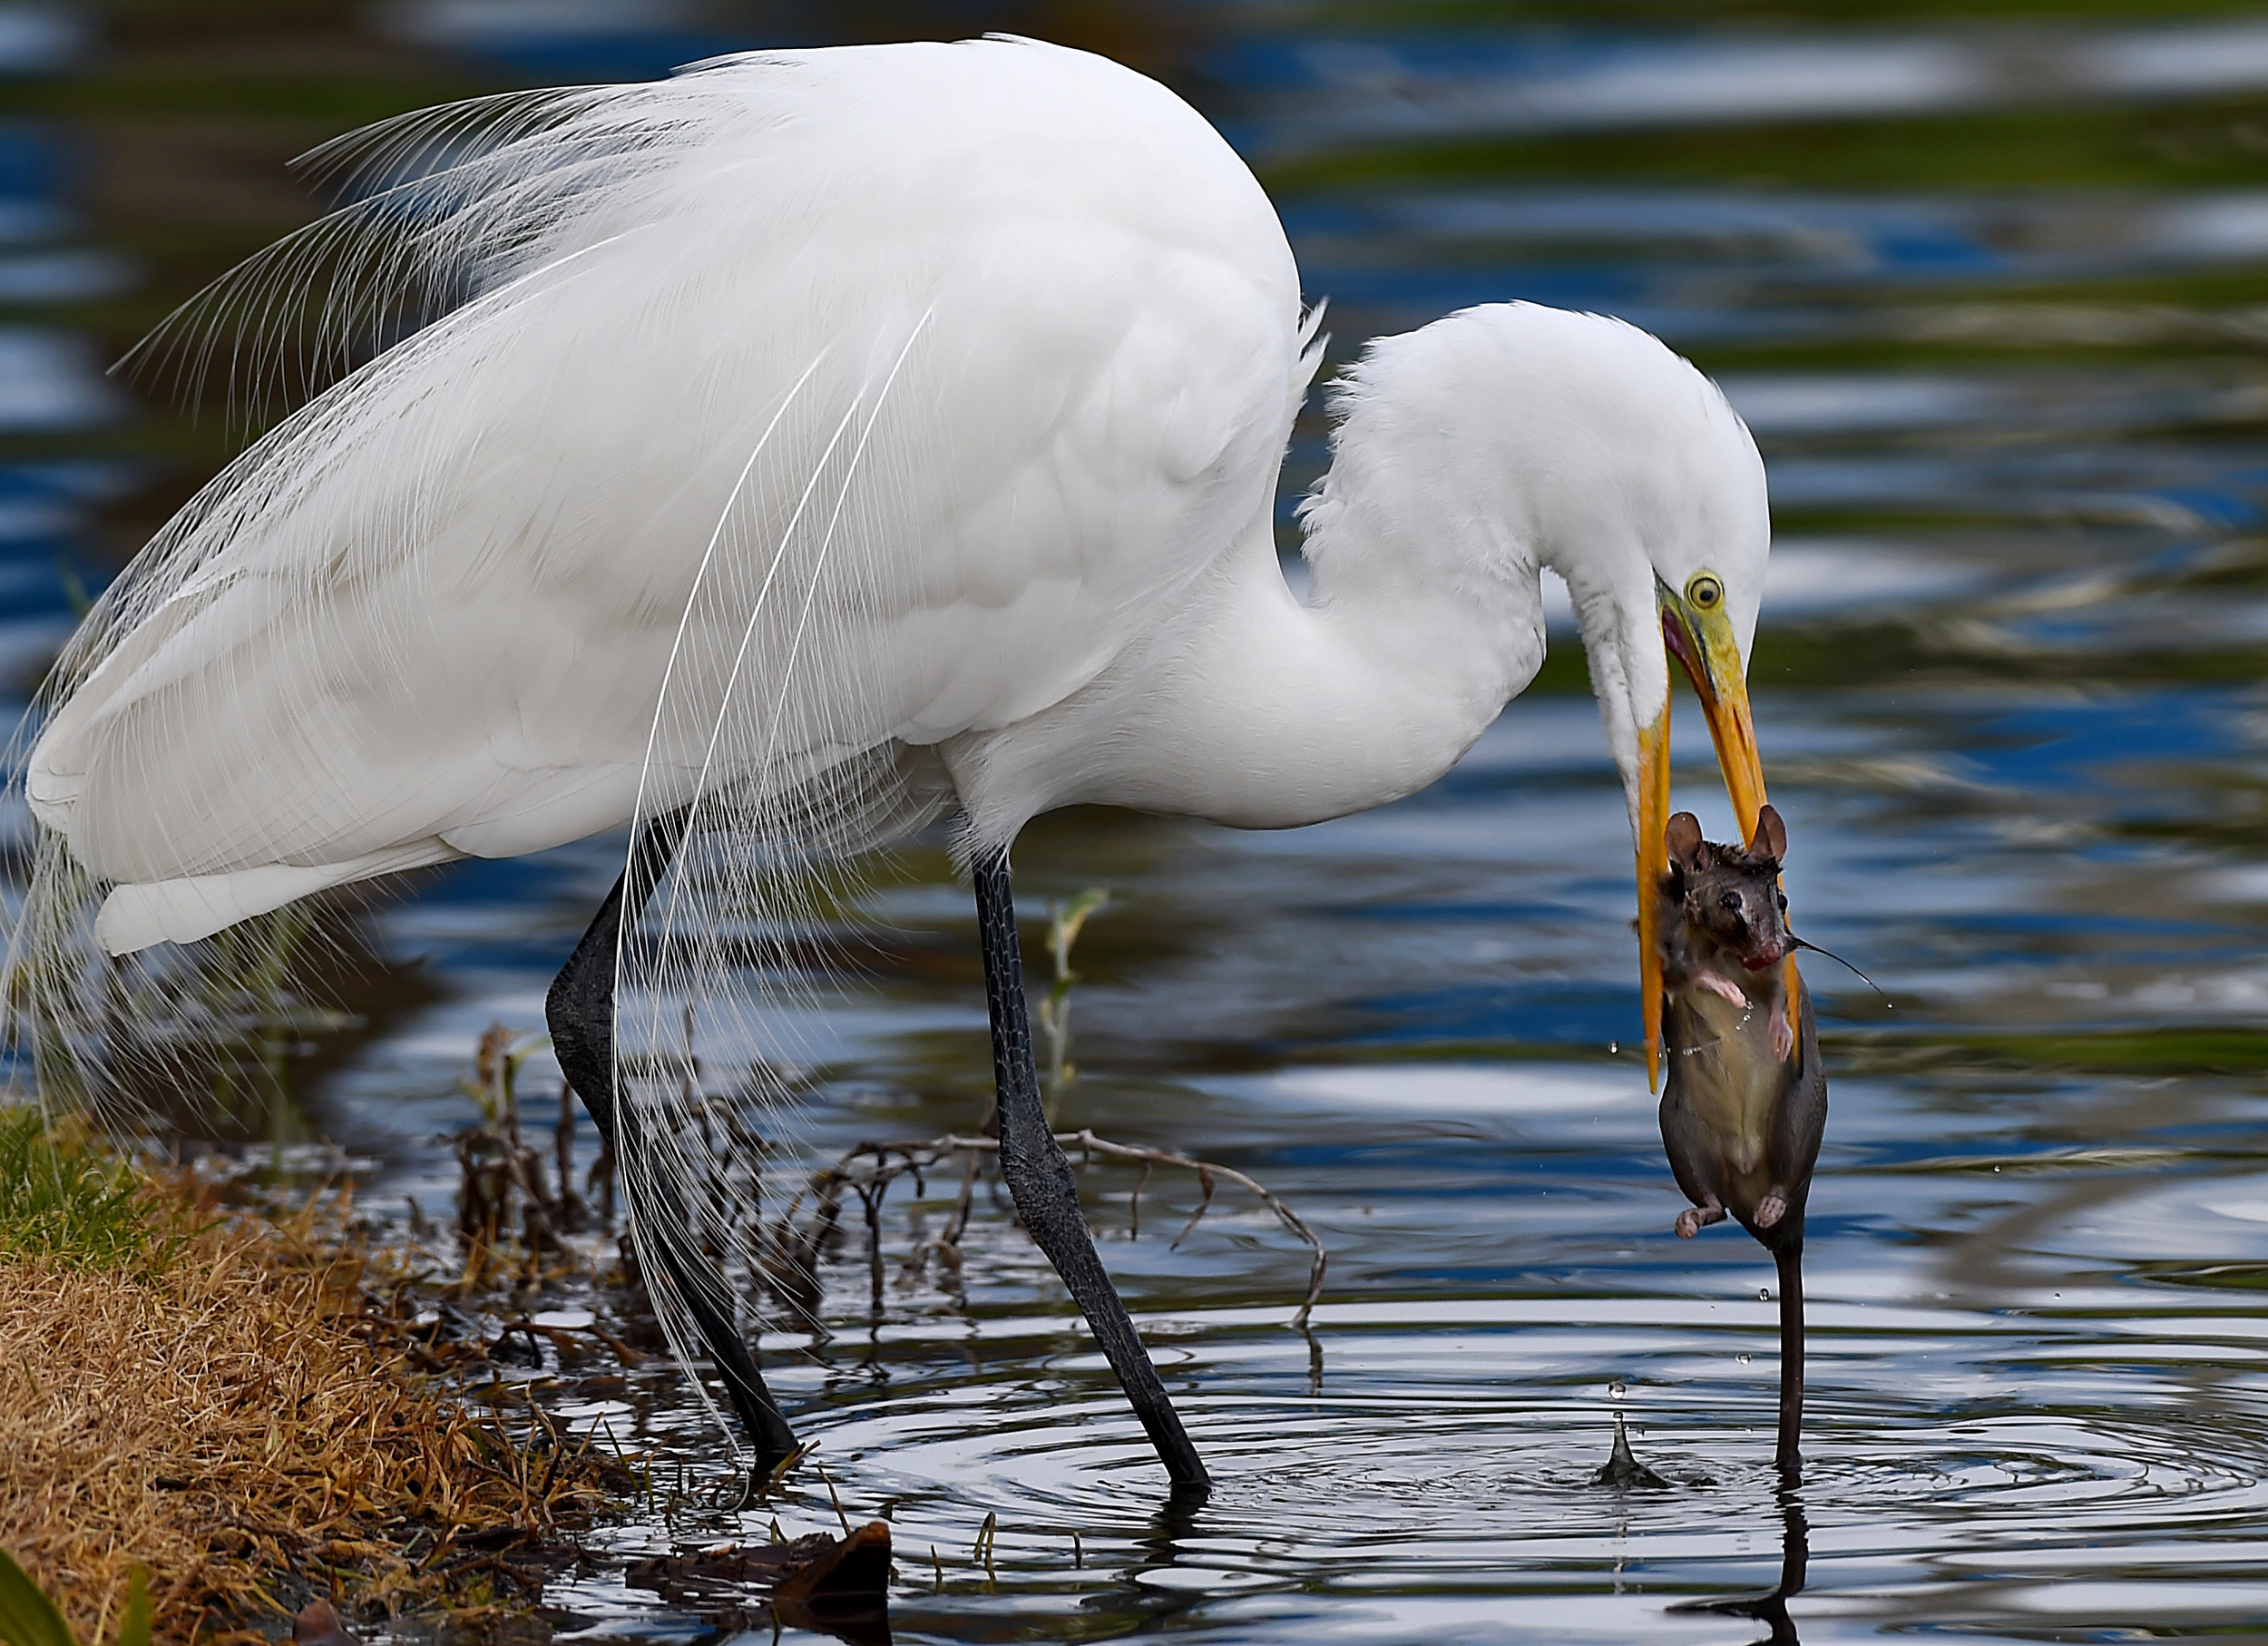 A Great Egret catches a rat at Centrelake Business Park in Ontario on Sunday, January 13, 2019.